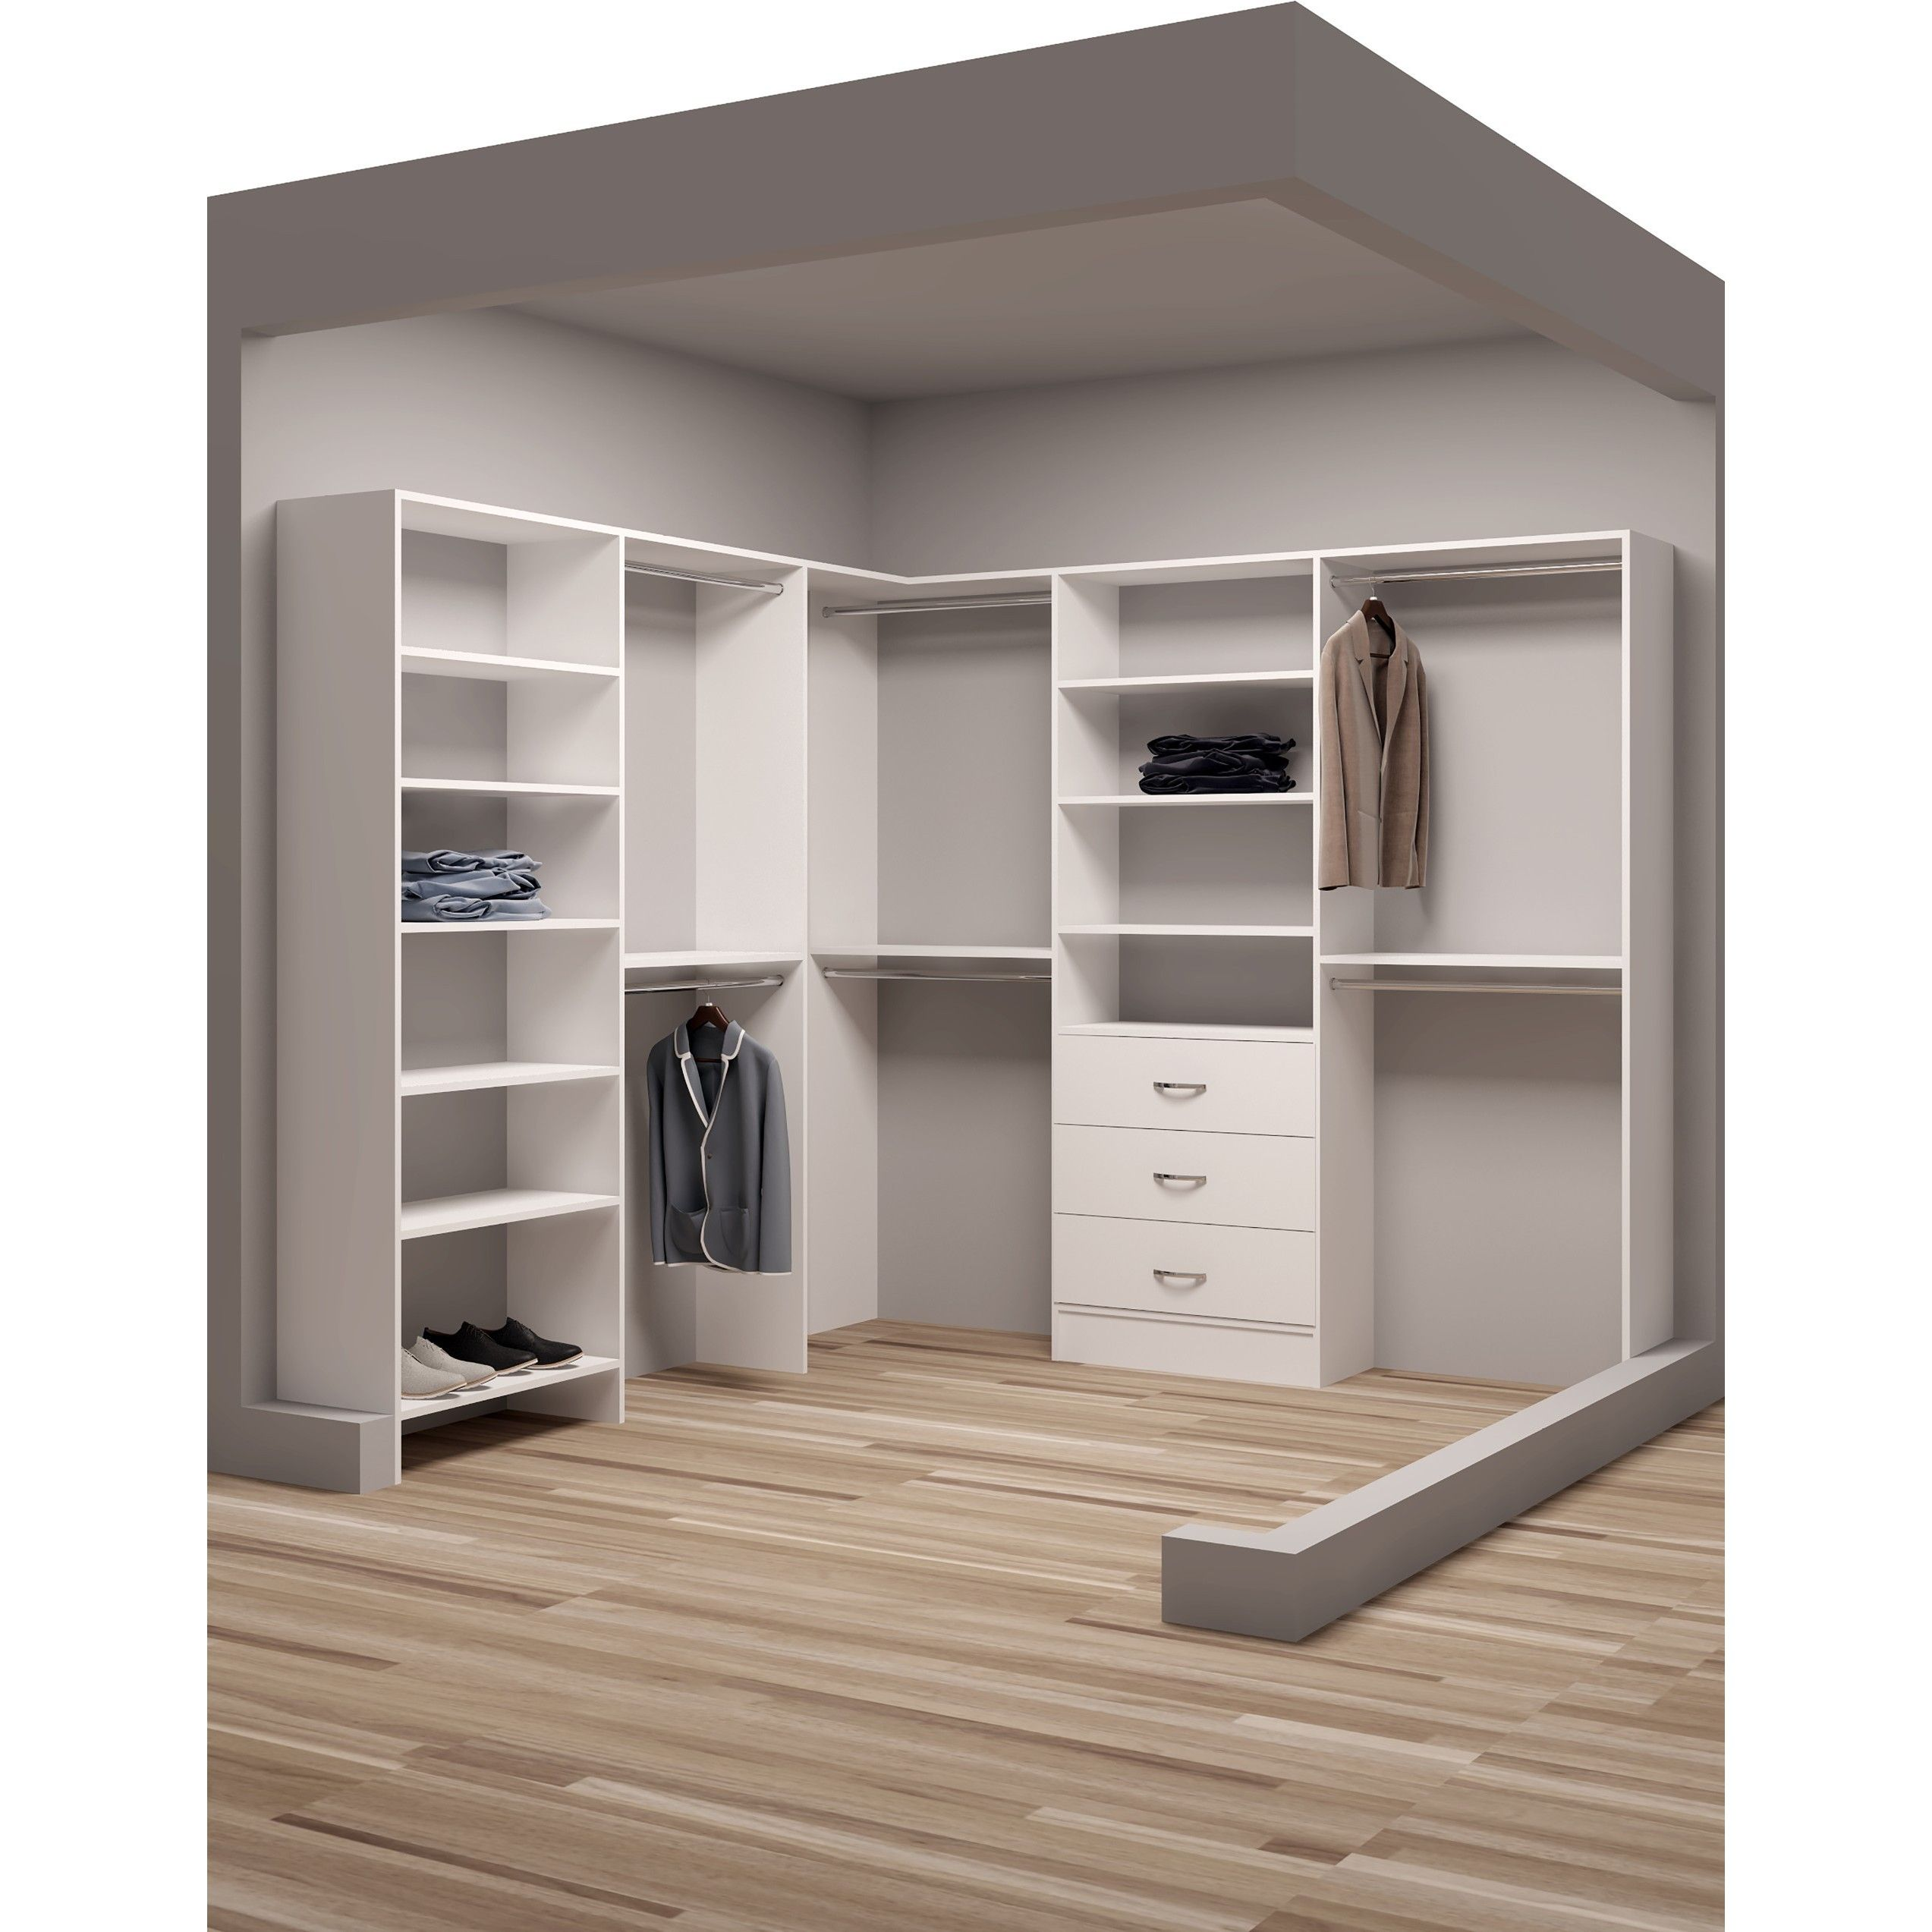 organizer closet closets storage wardrobe organizing expandable systems organizers shelving shelves seville bedroom clas system ideas for